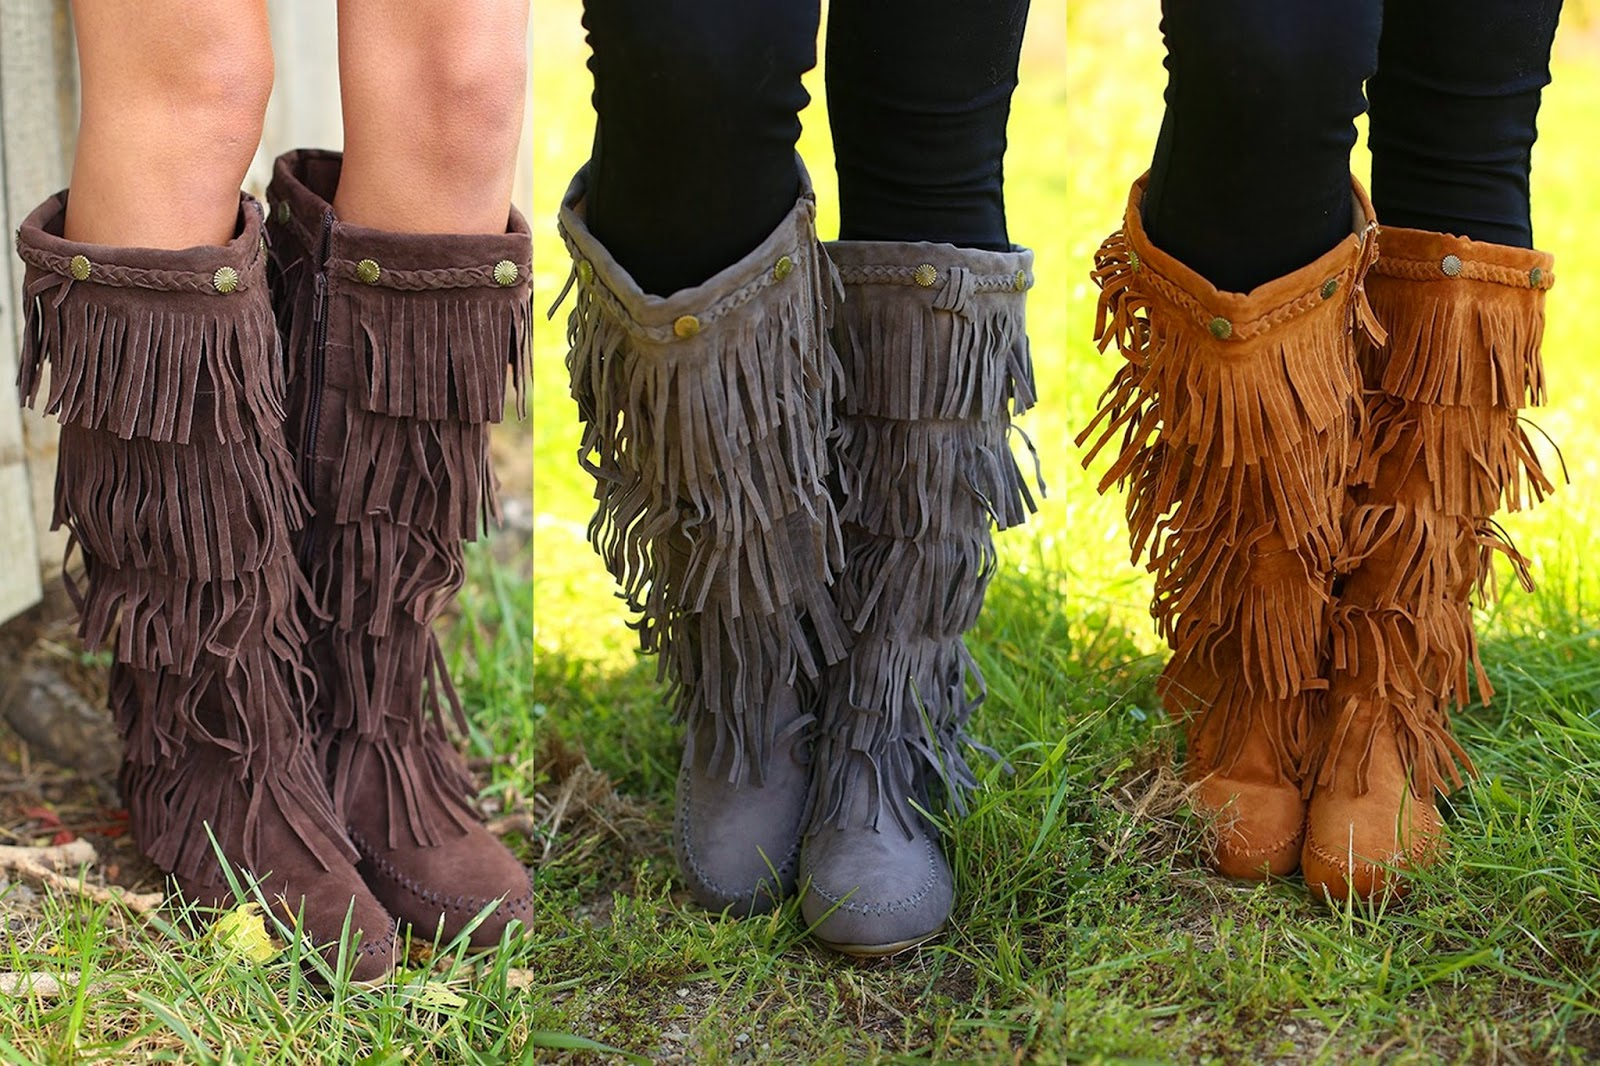 Flourish Boutique & Gallery: Winter Fashion Trend: BOOTS!